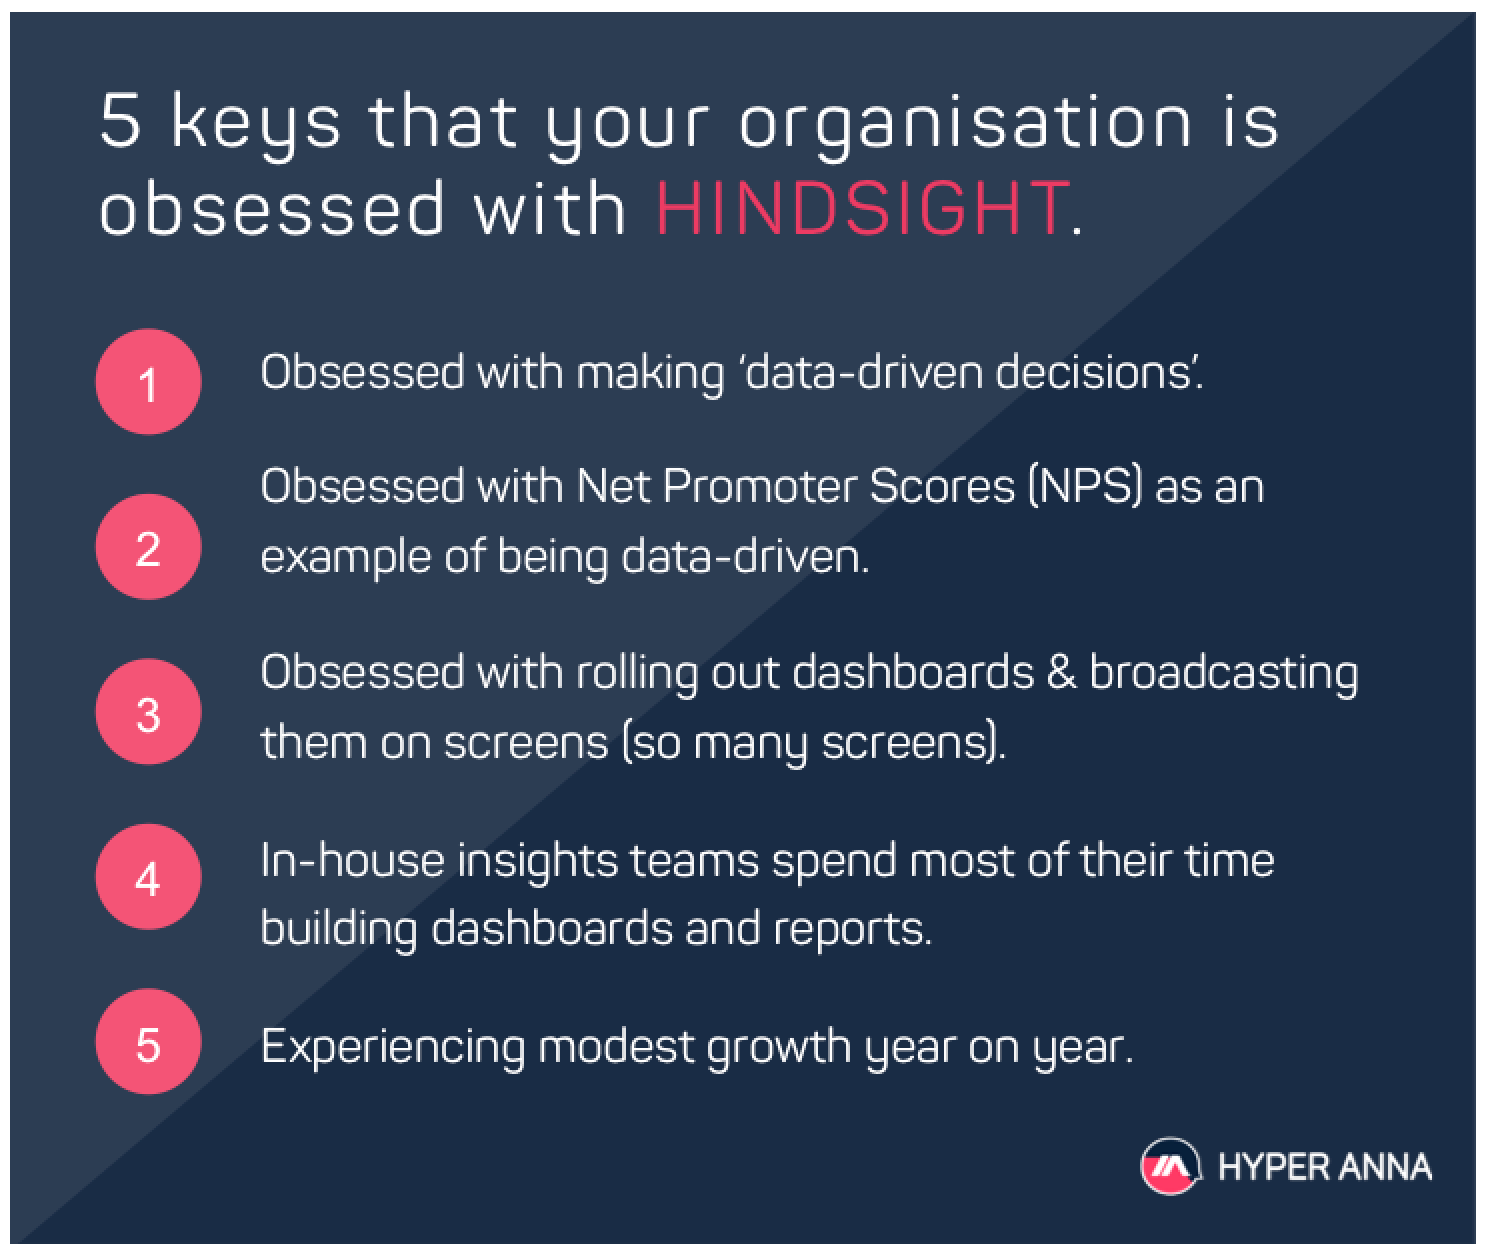 5-point checklist to measure your organisation performing with hindsight